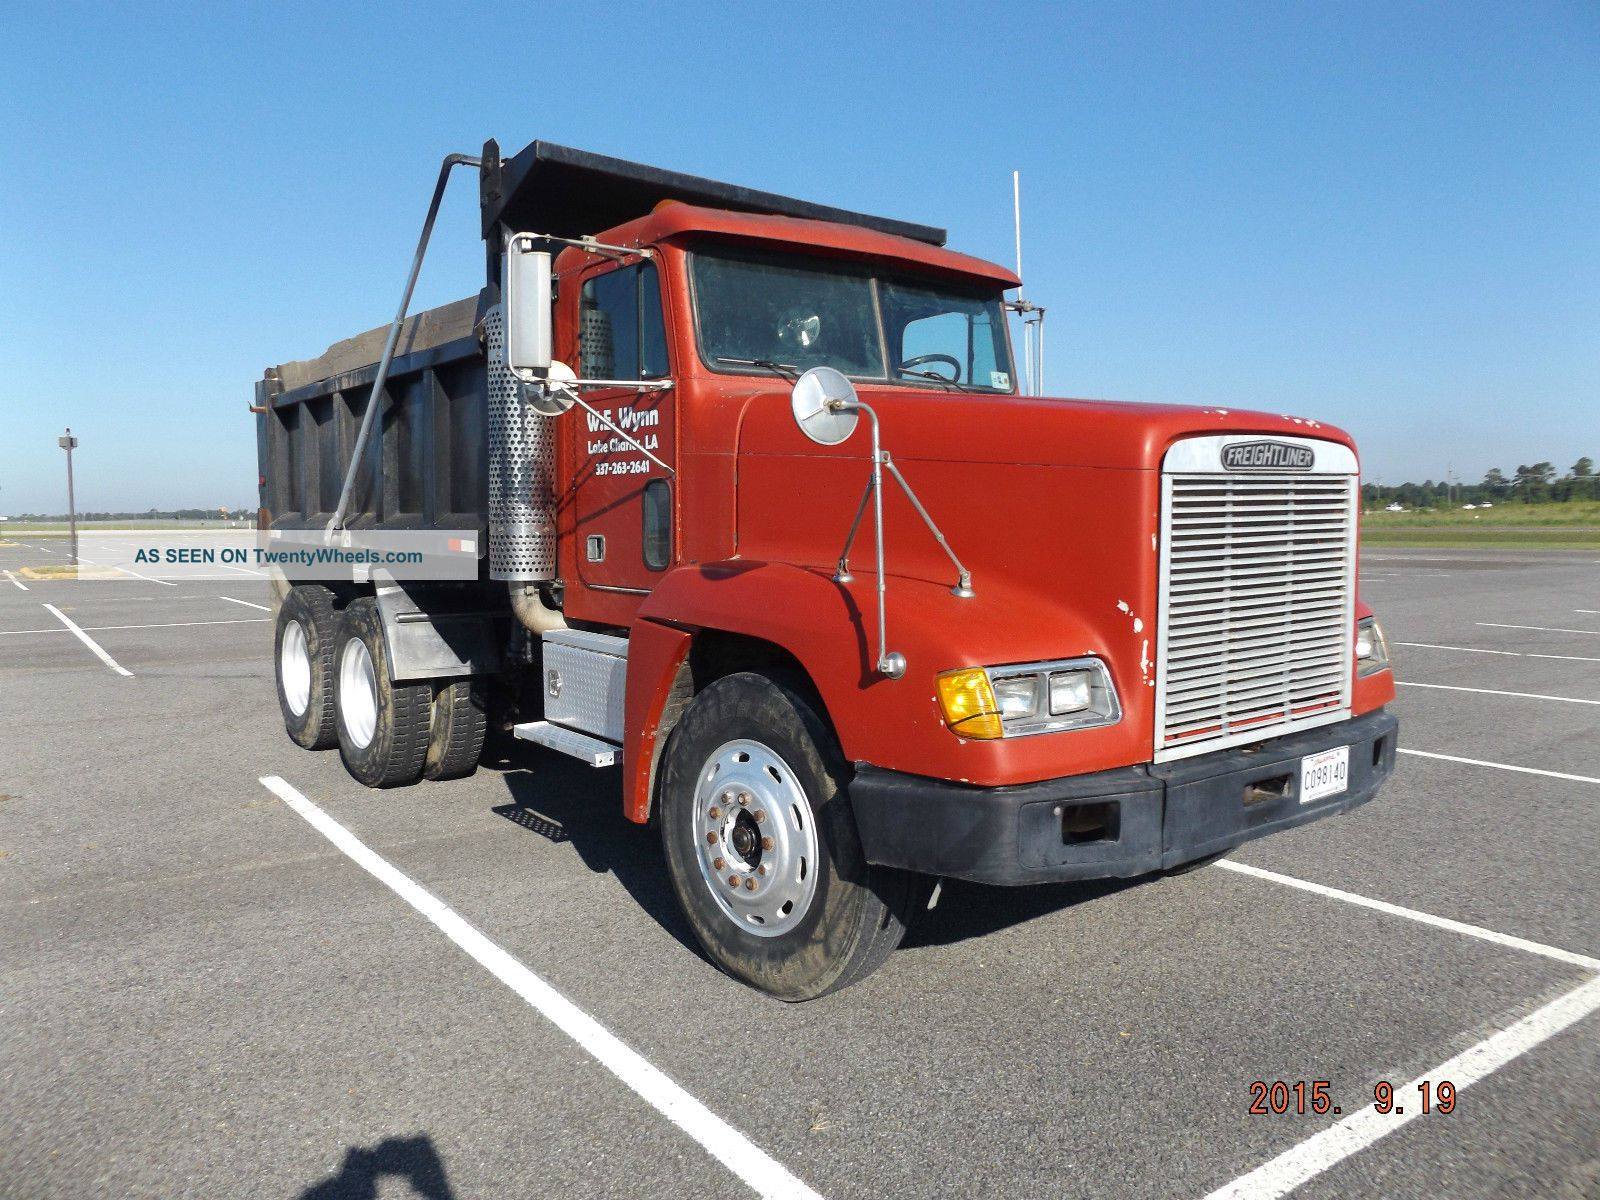 Freightliner Fld120 Show Truck >> 1989 Freightliner Conventional Pictures to Pin on Pinterest - PinsDaddy